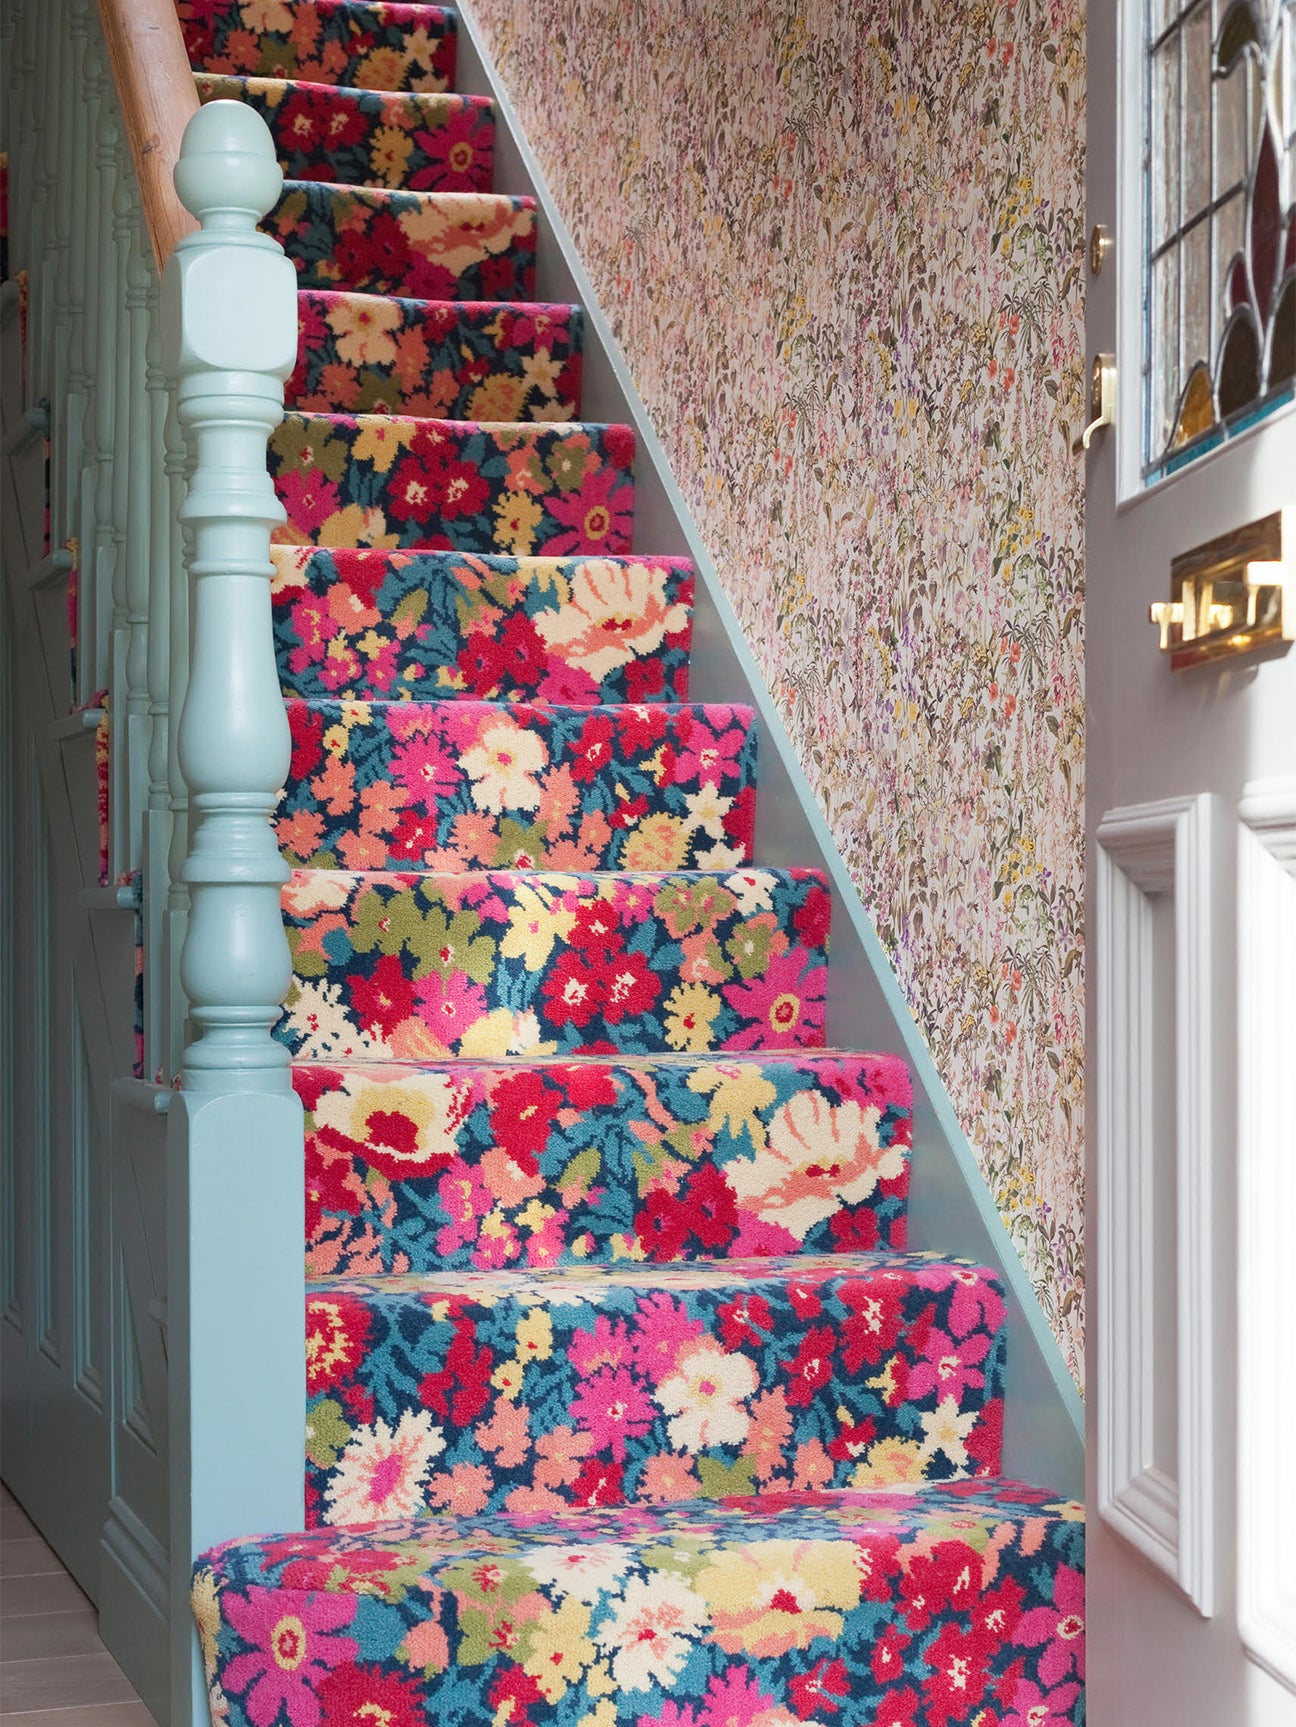 staircase carpeted with bold floral fabric